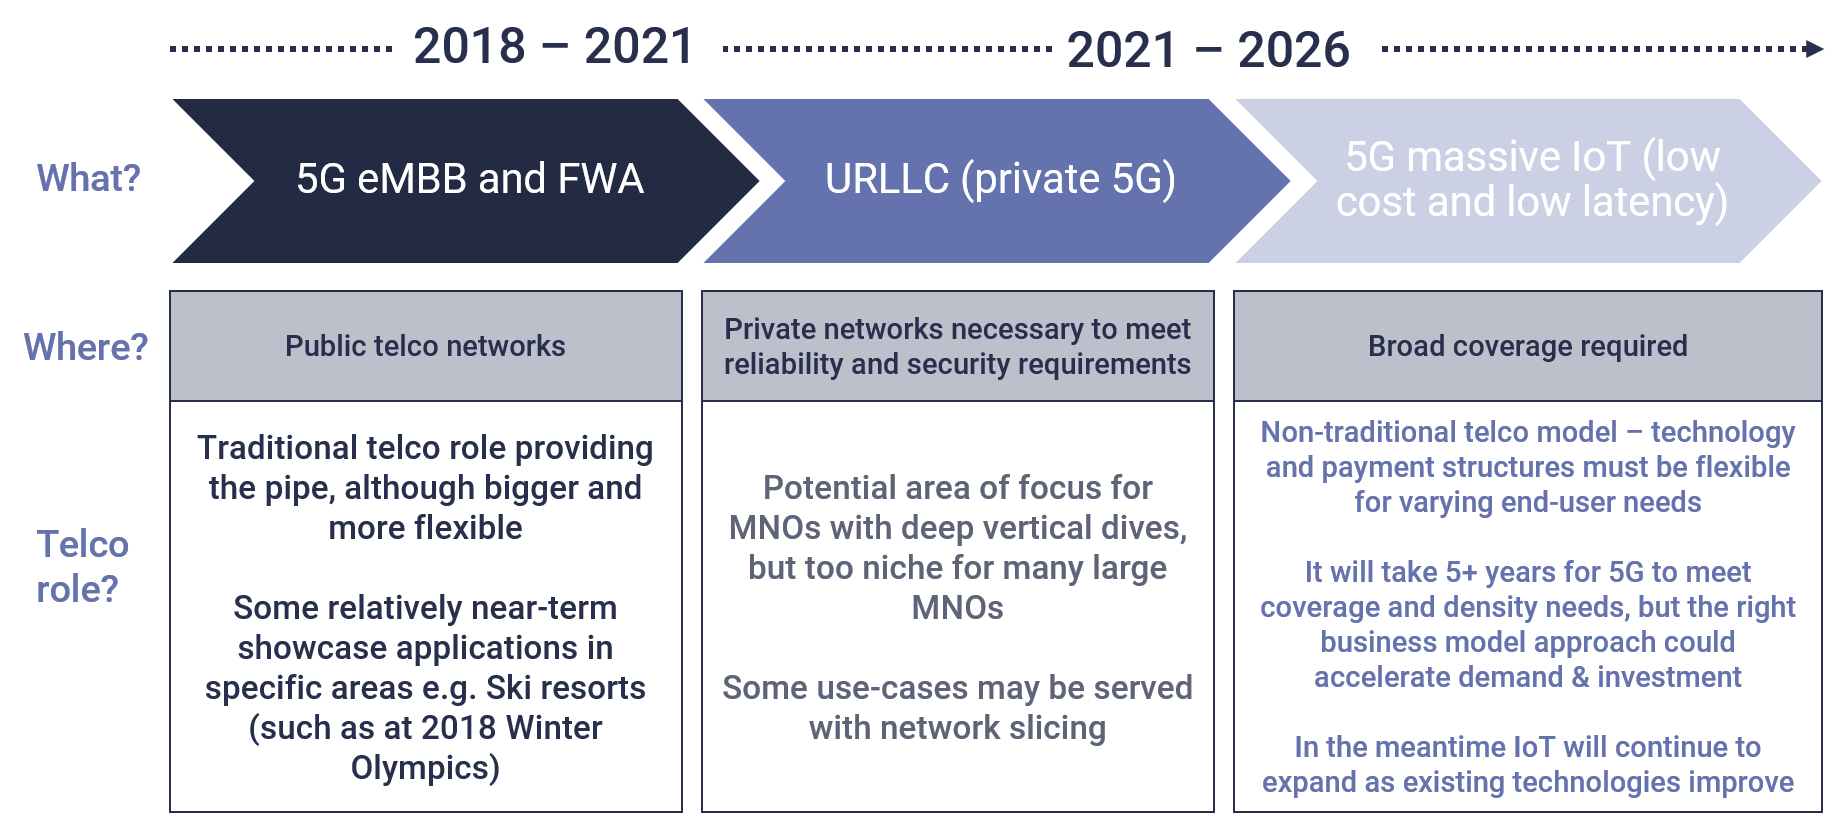 evolution of 5G technology eMBB, URLLC, private 5G, massiv IoT